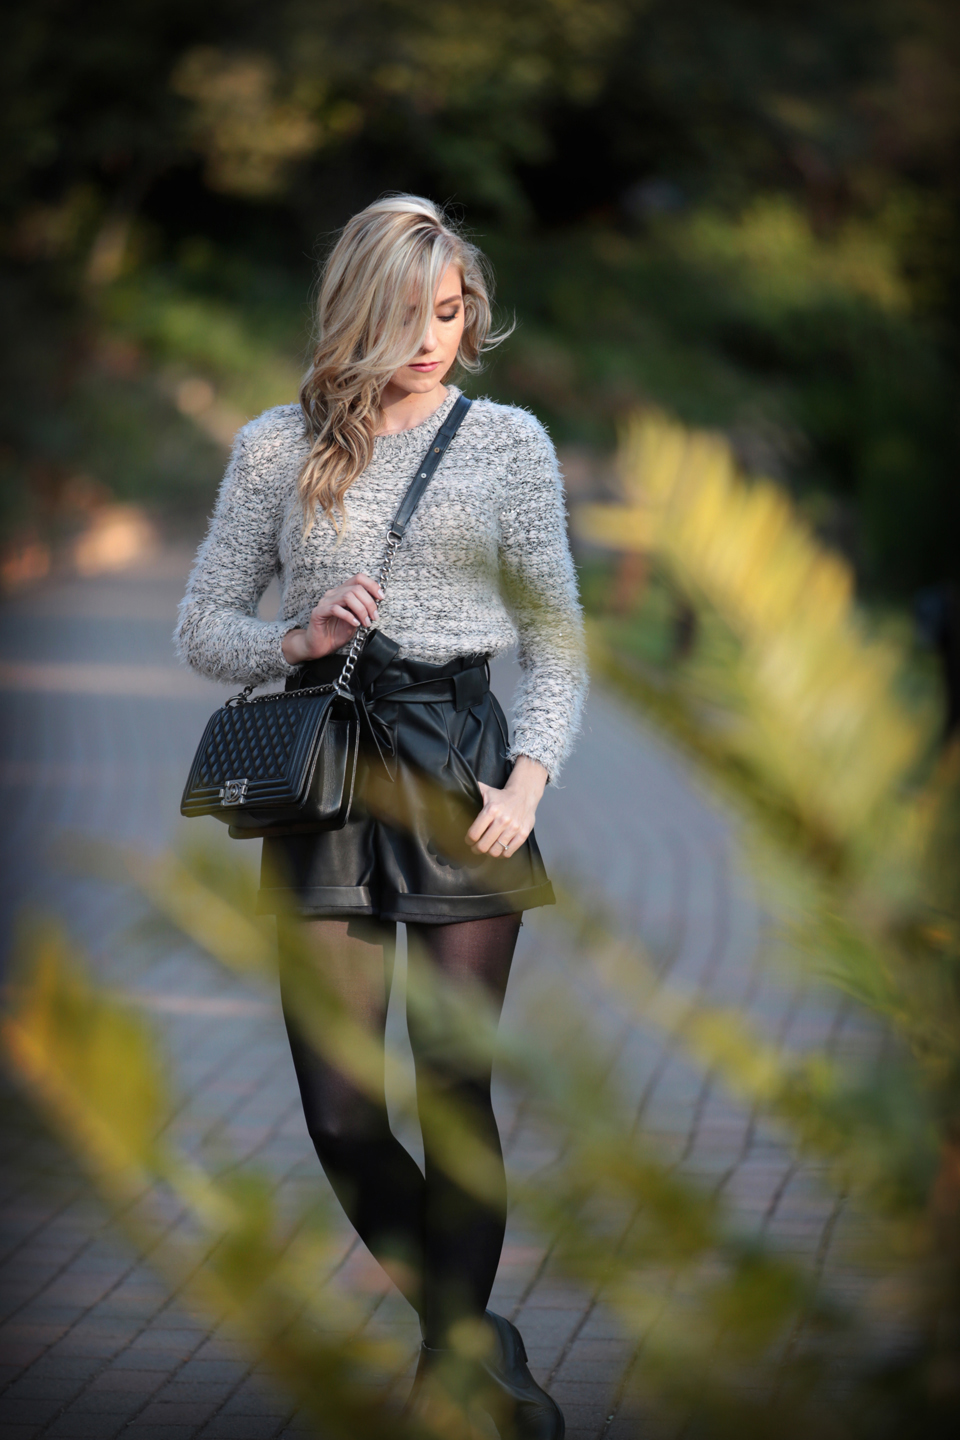 amandacusto-fashionblogger-yde-zara-leather-shorts-chanel-leboy-blonde-blogger-southafrica-001.jpg